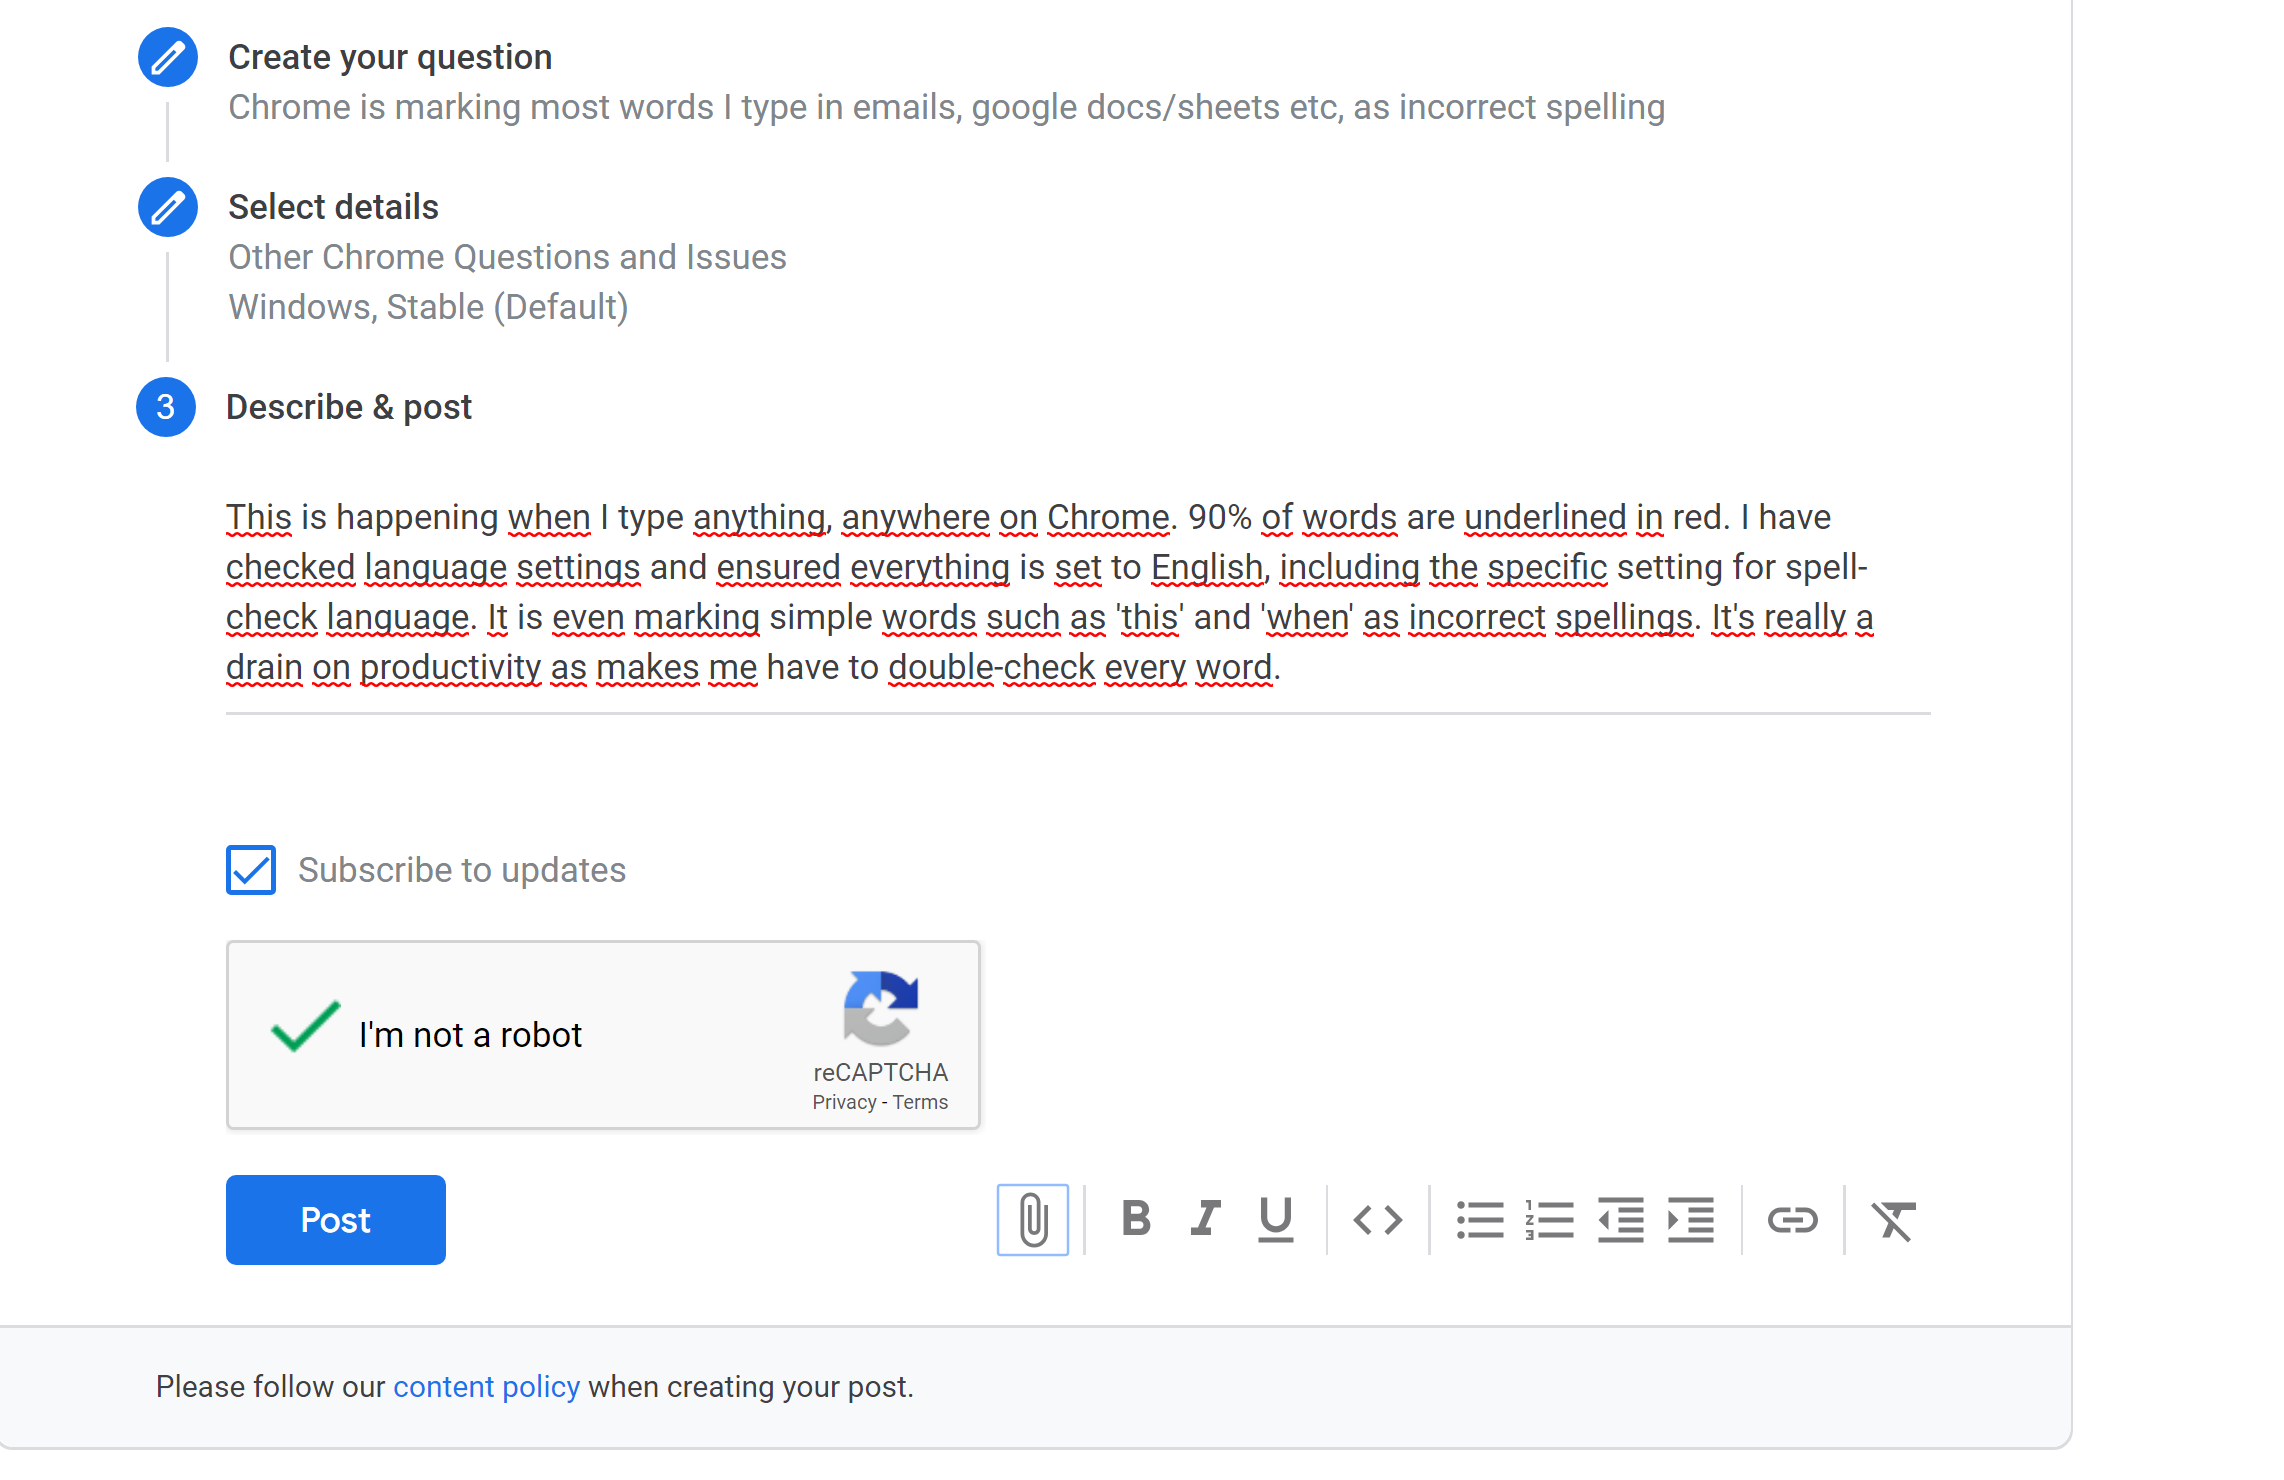 Chrome is marking most words I type in emails, google docs